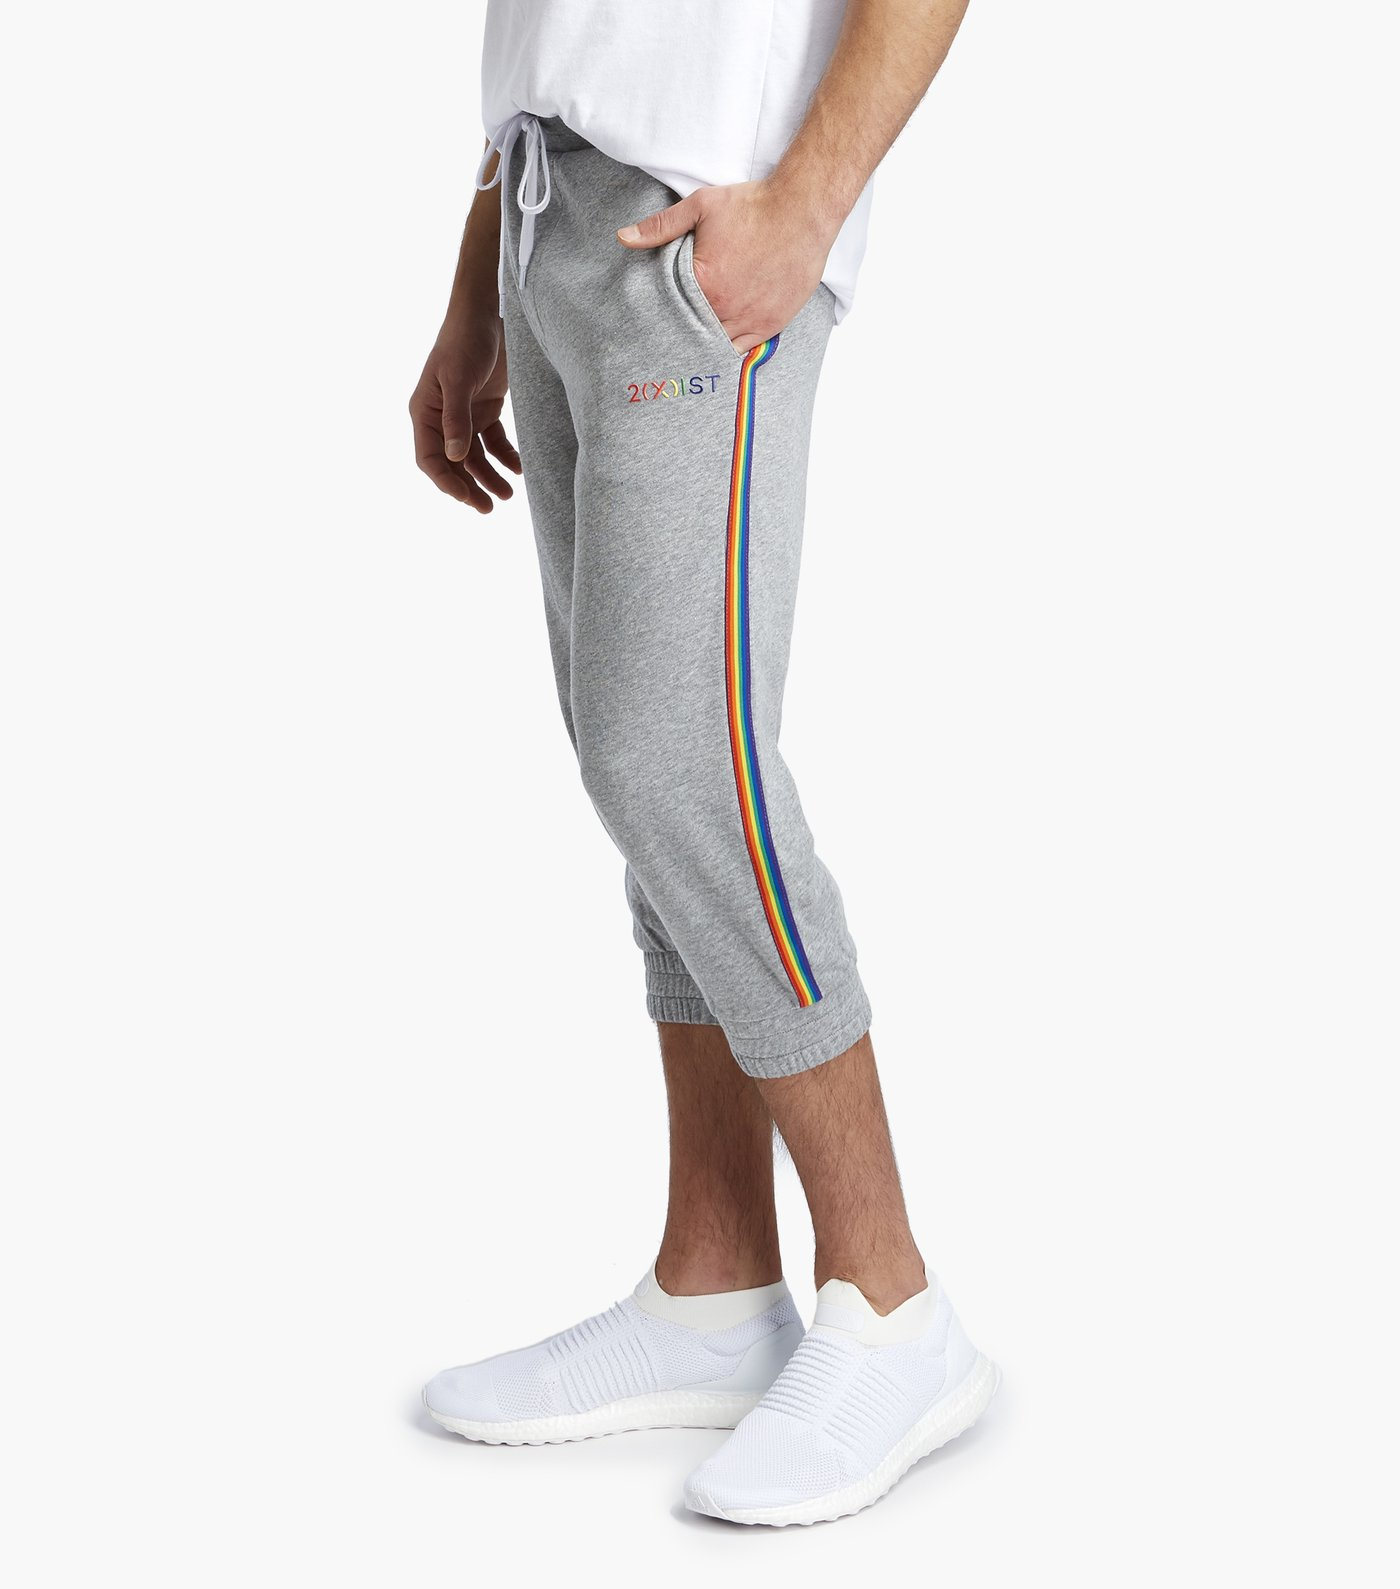 2(x)ist joggers - €35 - Perfect for the gym and for the protein shake in hand walk back to the flat after